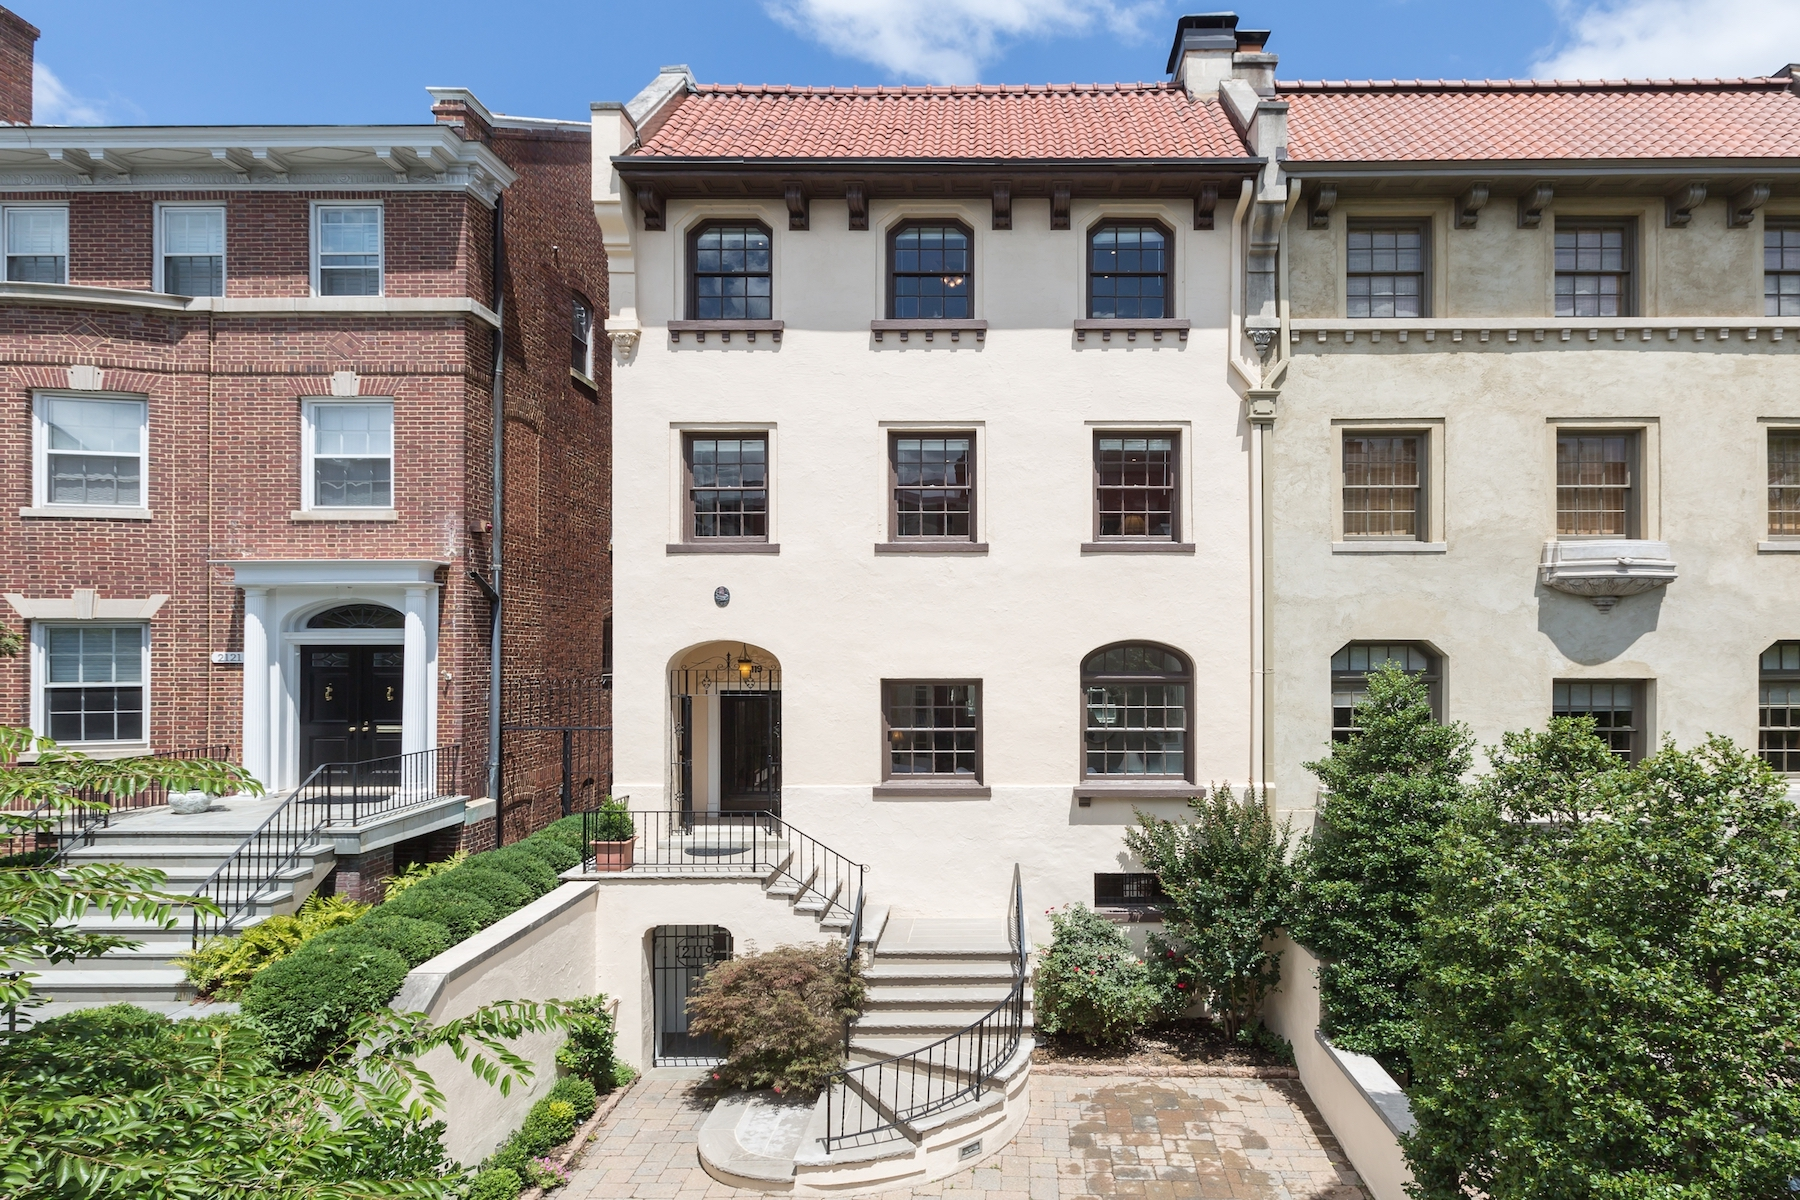 Casa unifamiliar adosada (Townhouse) por un Venta en Kalorama 2119 Leroy Place Nw Washington, Distrito De Columbia, 20008 Estados Unidos